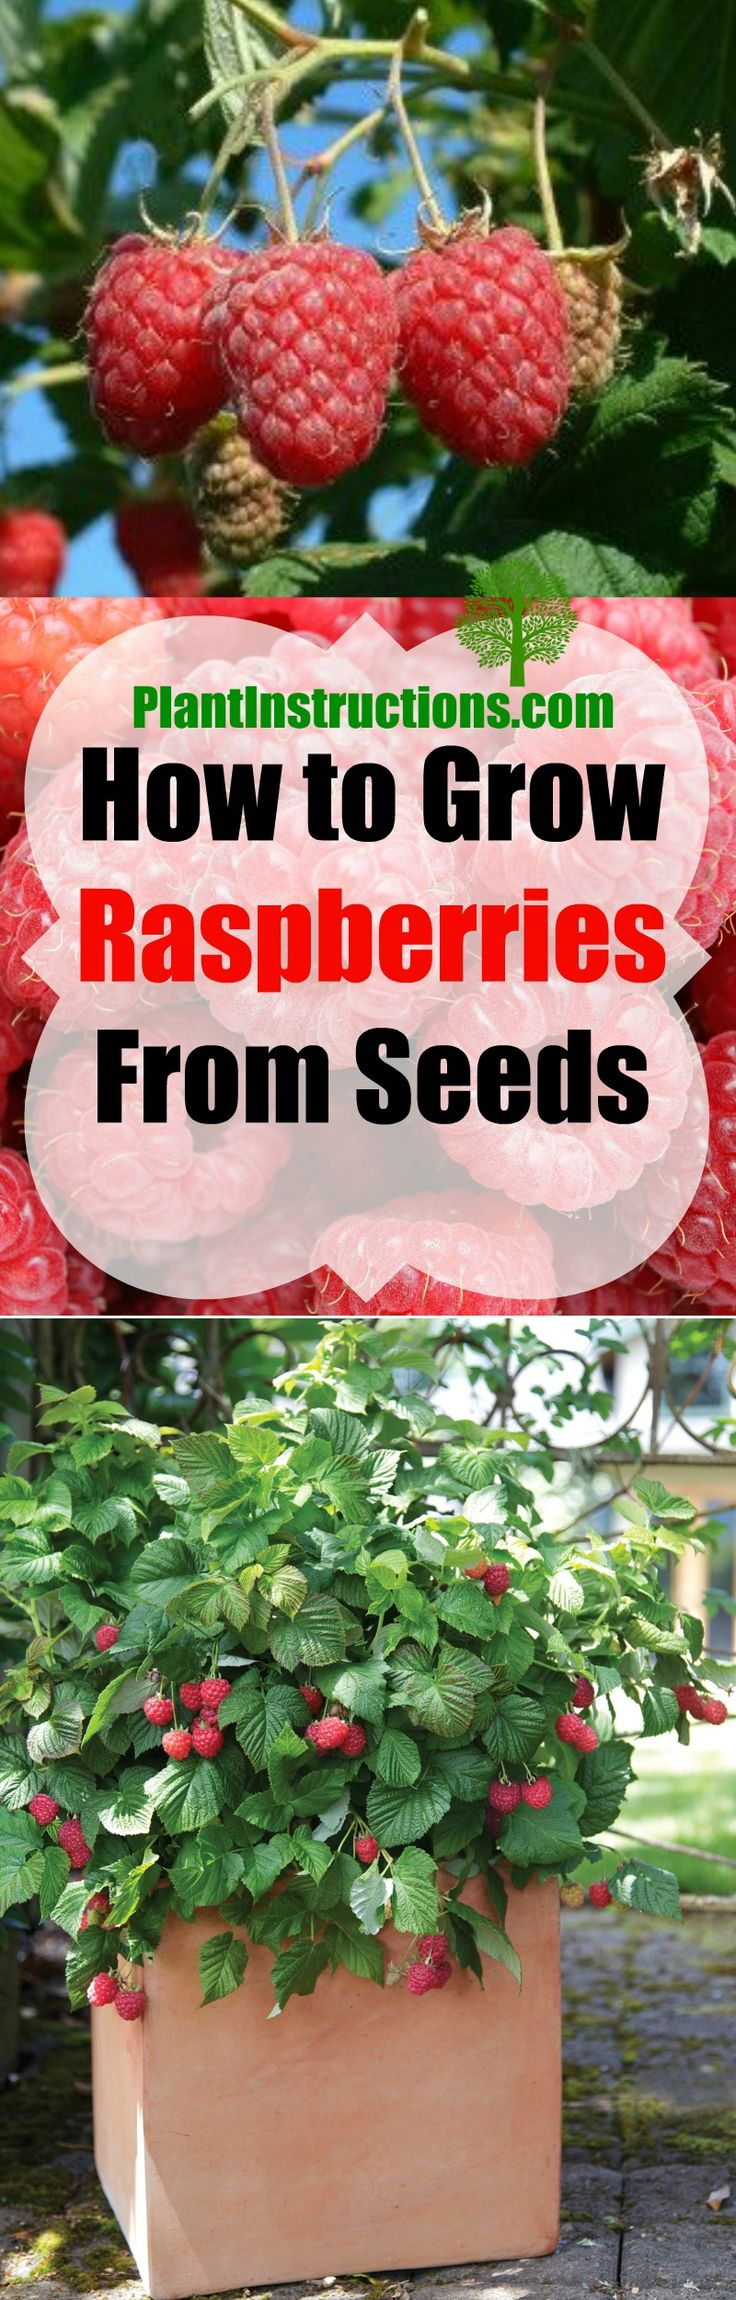 Learn how to grow raspberries from seeds the easy way!